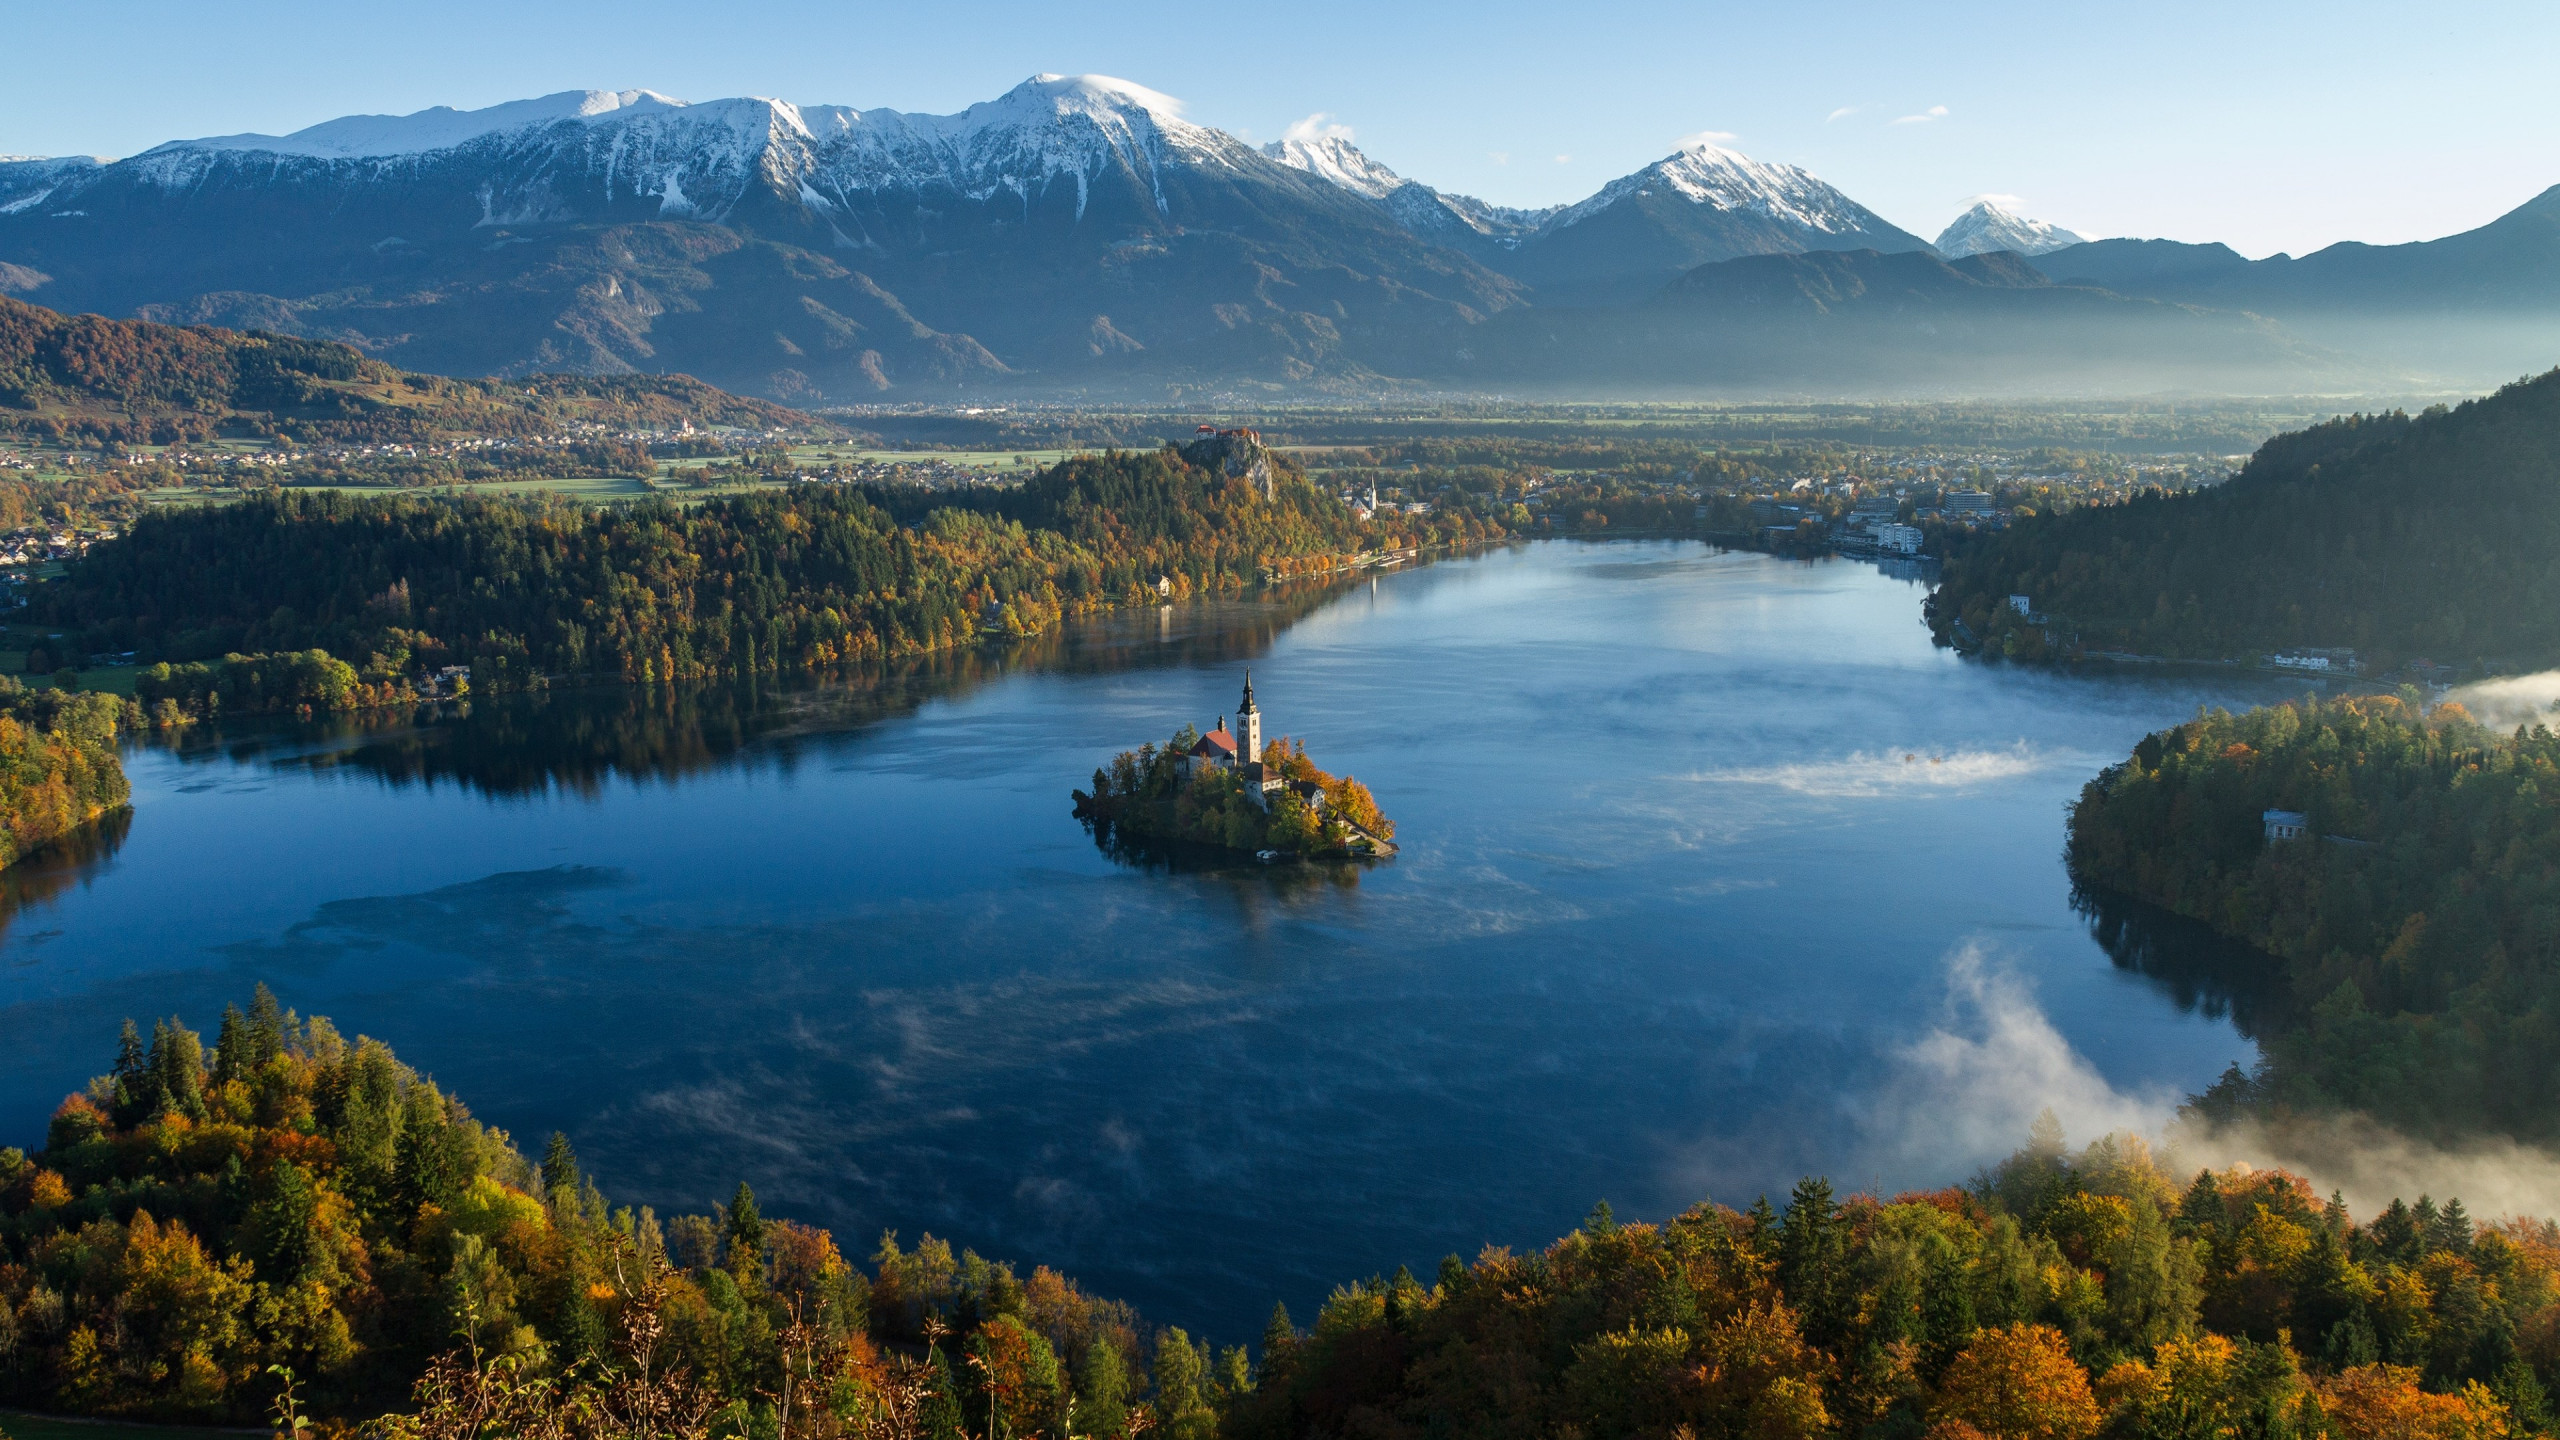 Best landscape from Bled, Slovenia | 2560x1440 wallpaper